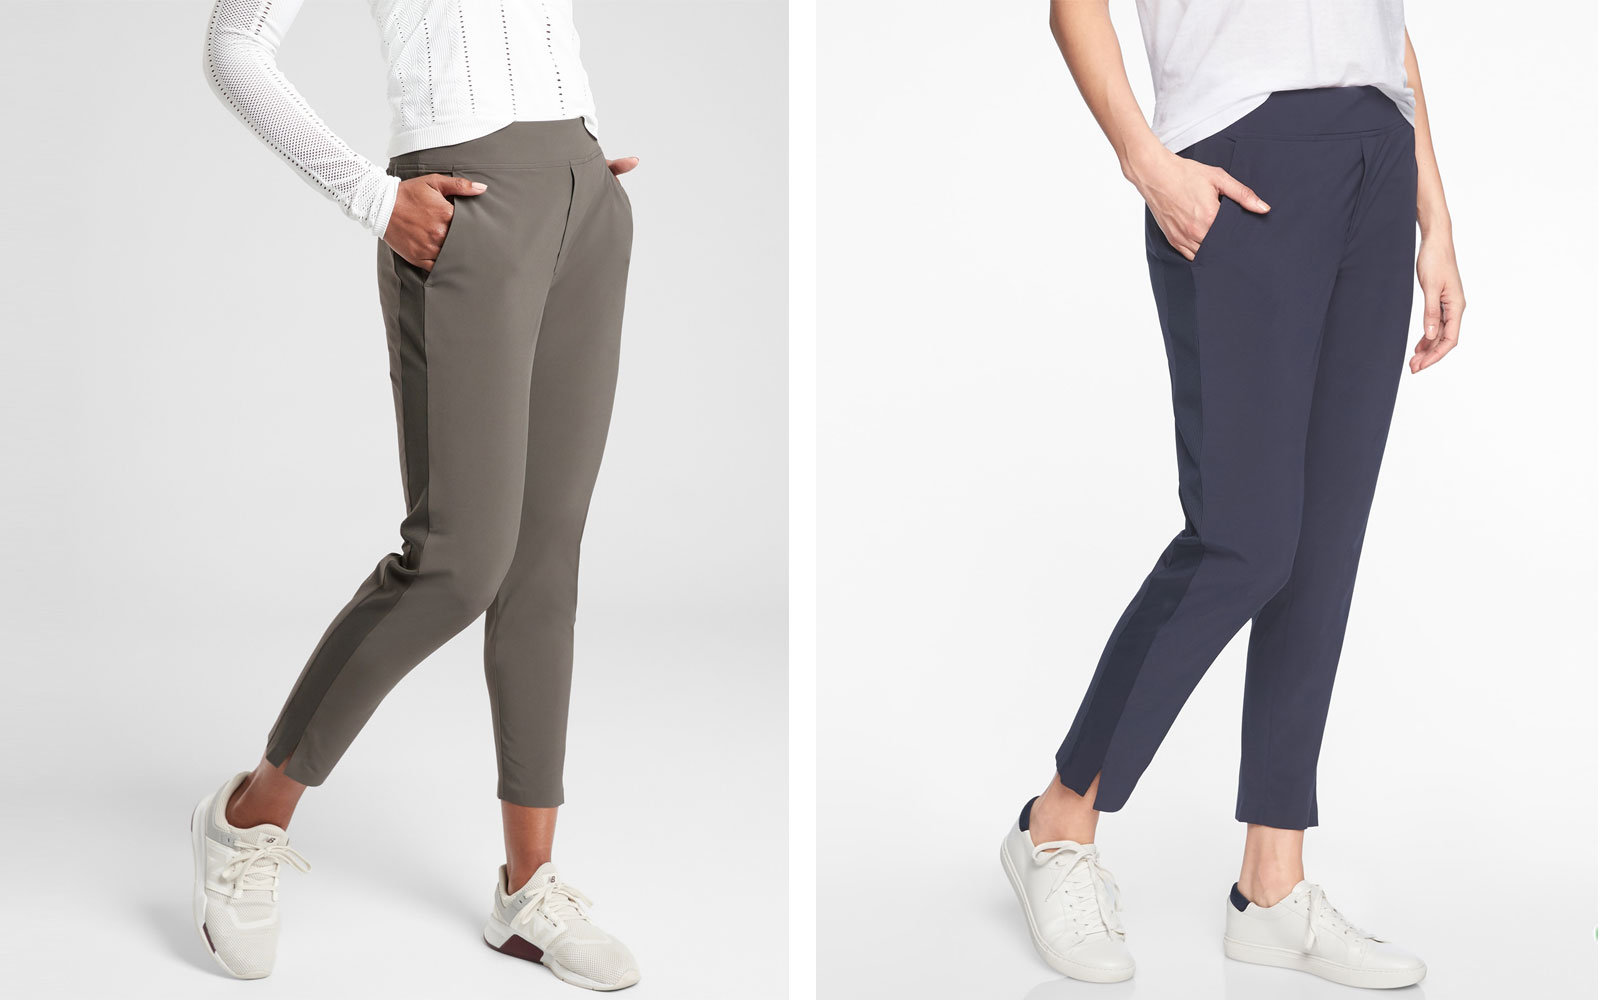 Two pairs of lounge pants, olive and navy